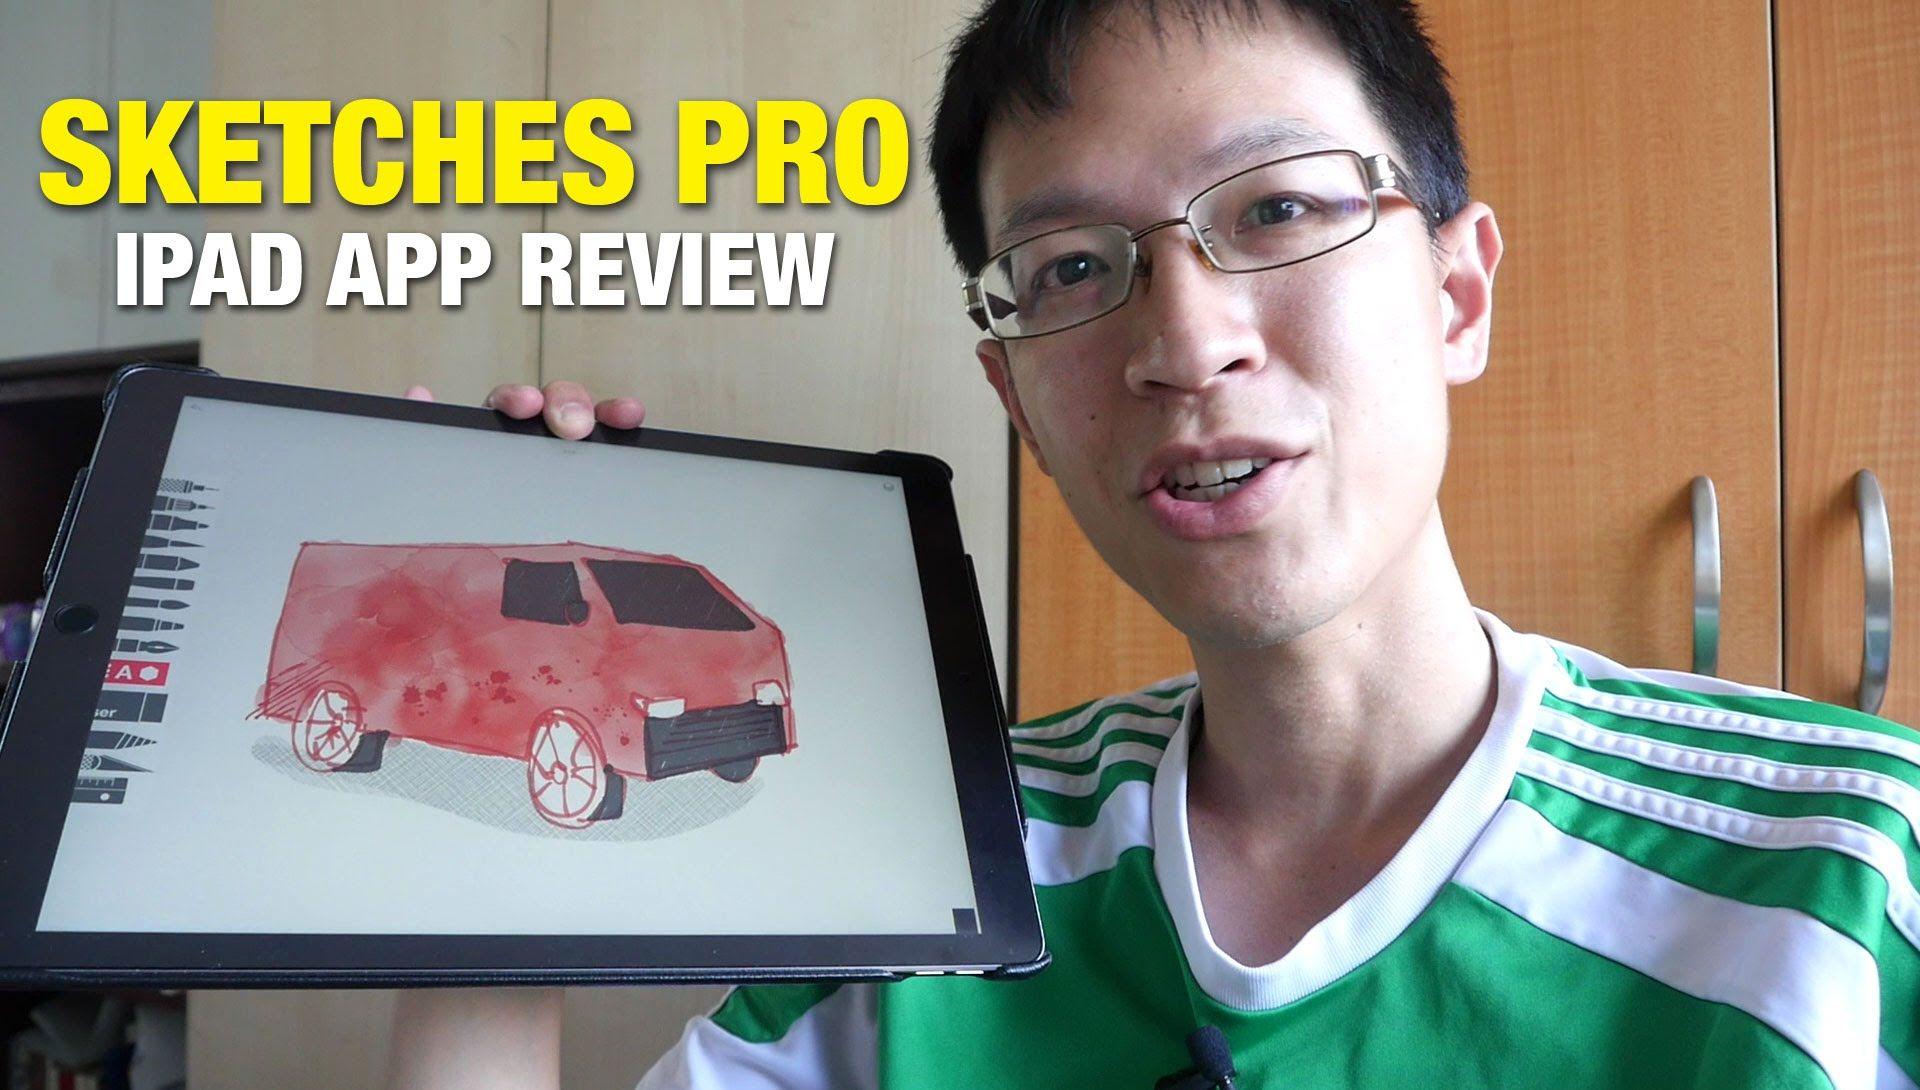 Sketches Pro (iPad App Review) (With images) Ipad apps